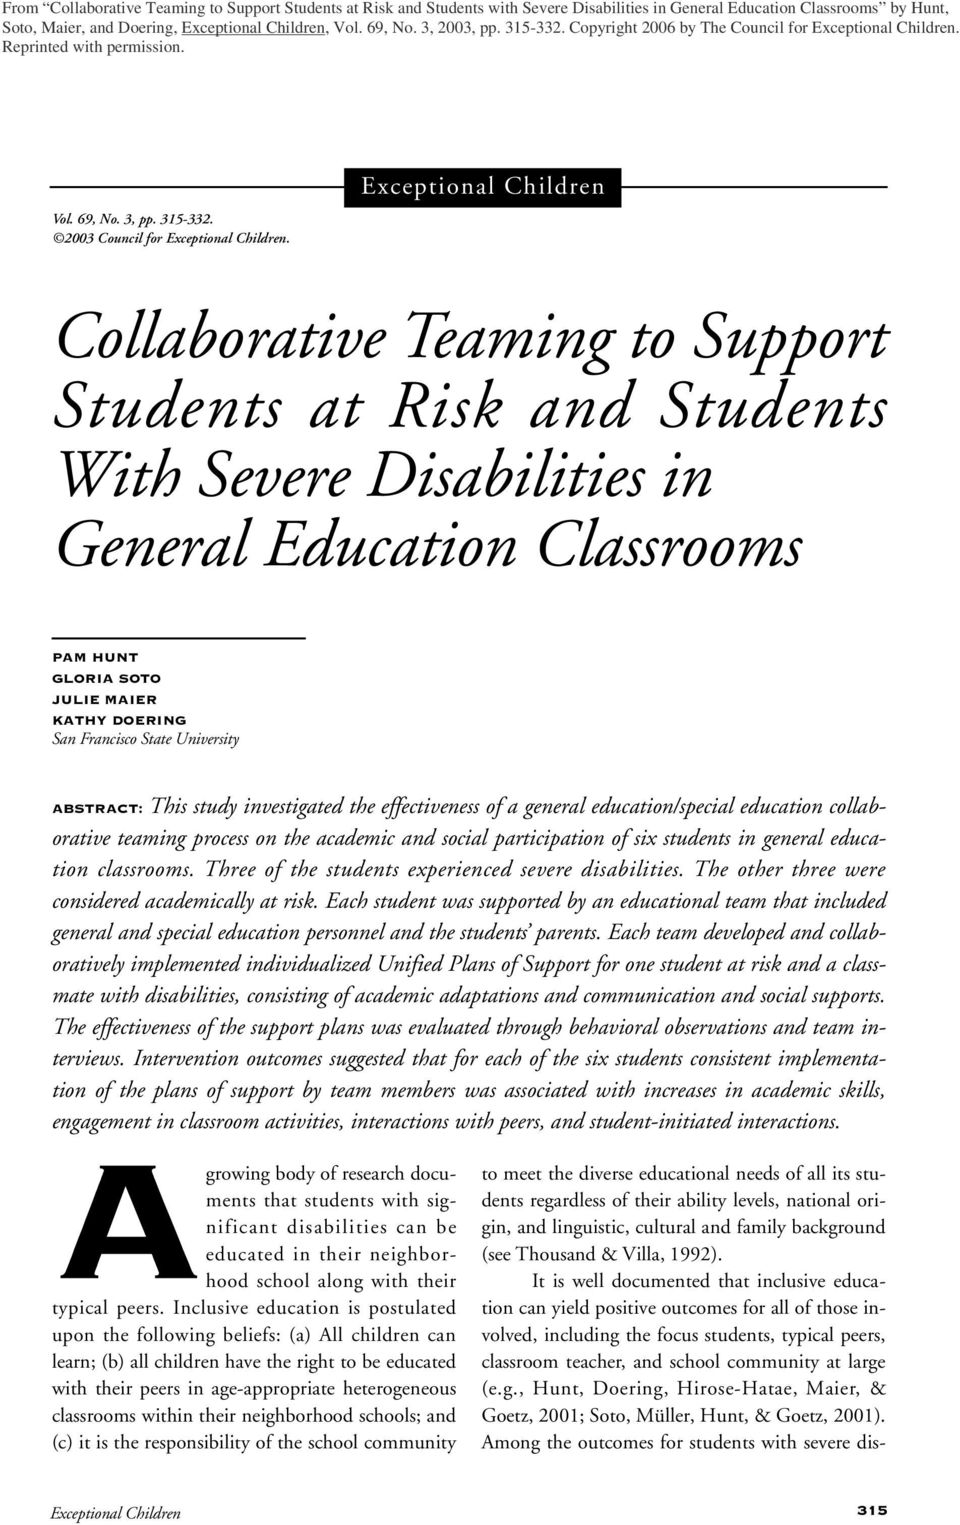 Exceptional Children Collaborative Teaming to Support Students at Risk and Students With Severe Disabilities in General Education Classrooms PAM HUNT GLORIA SOTO JULIE MAIER KATHY DOERING San